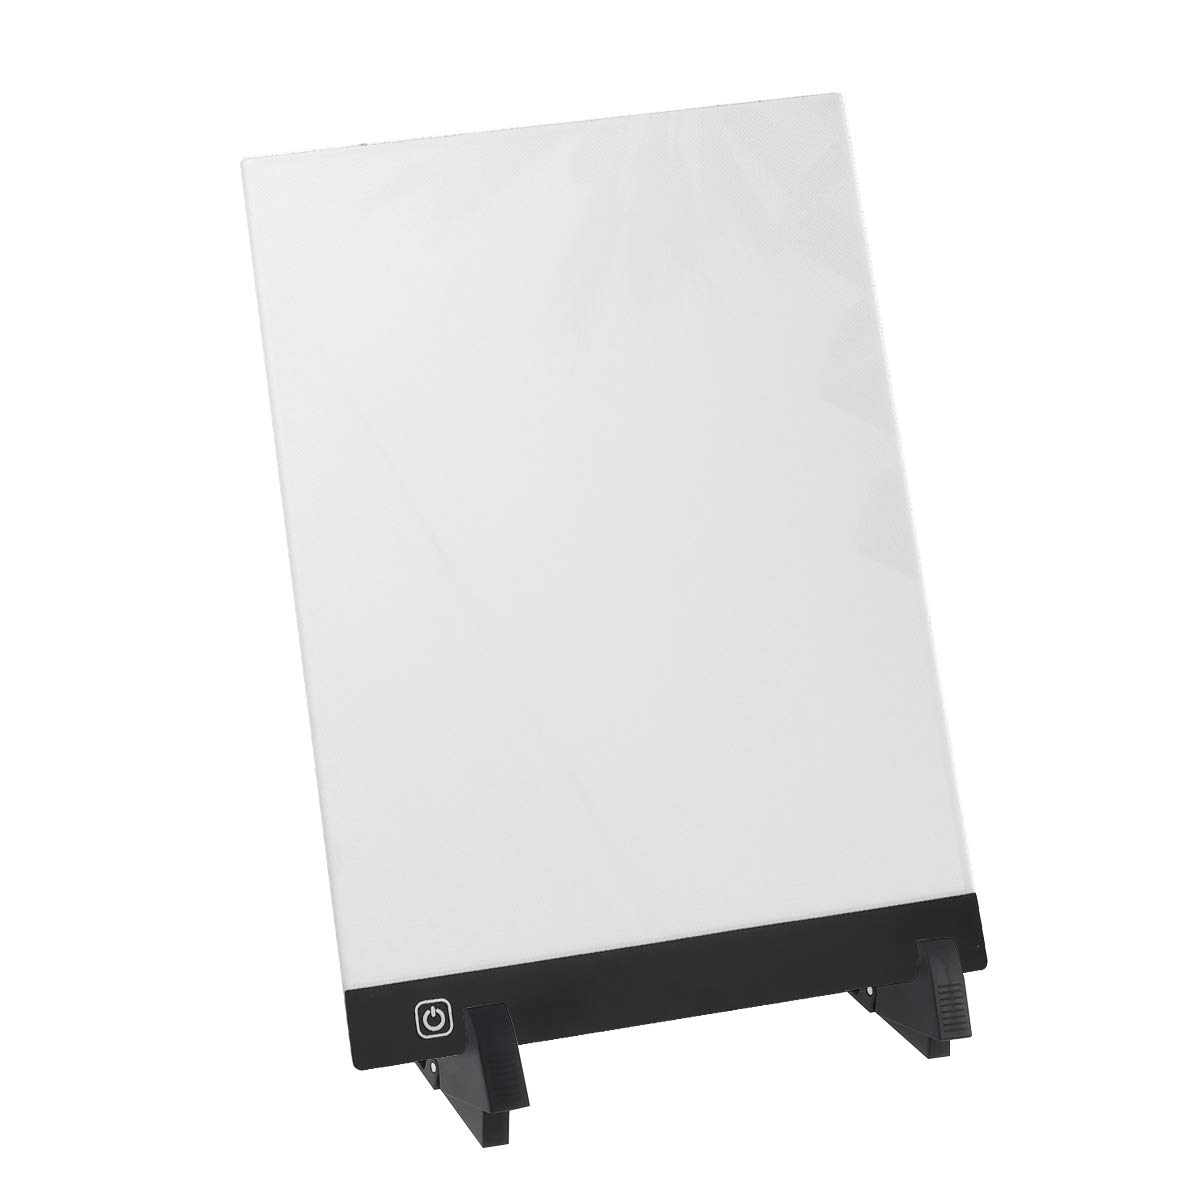 STOBOK Light Drawing Board 1 Set A4 LED Light Box Drawing Sketch Tablet Tracking Artist Backing Plate Diamond Painting Tools for Desktop Table Easel Craft Workstation by STOBOK (Image #1)